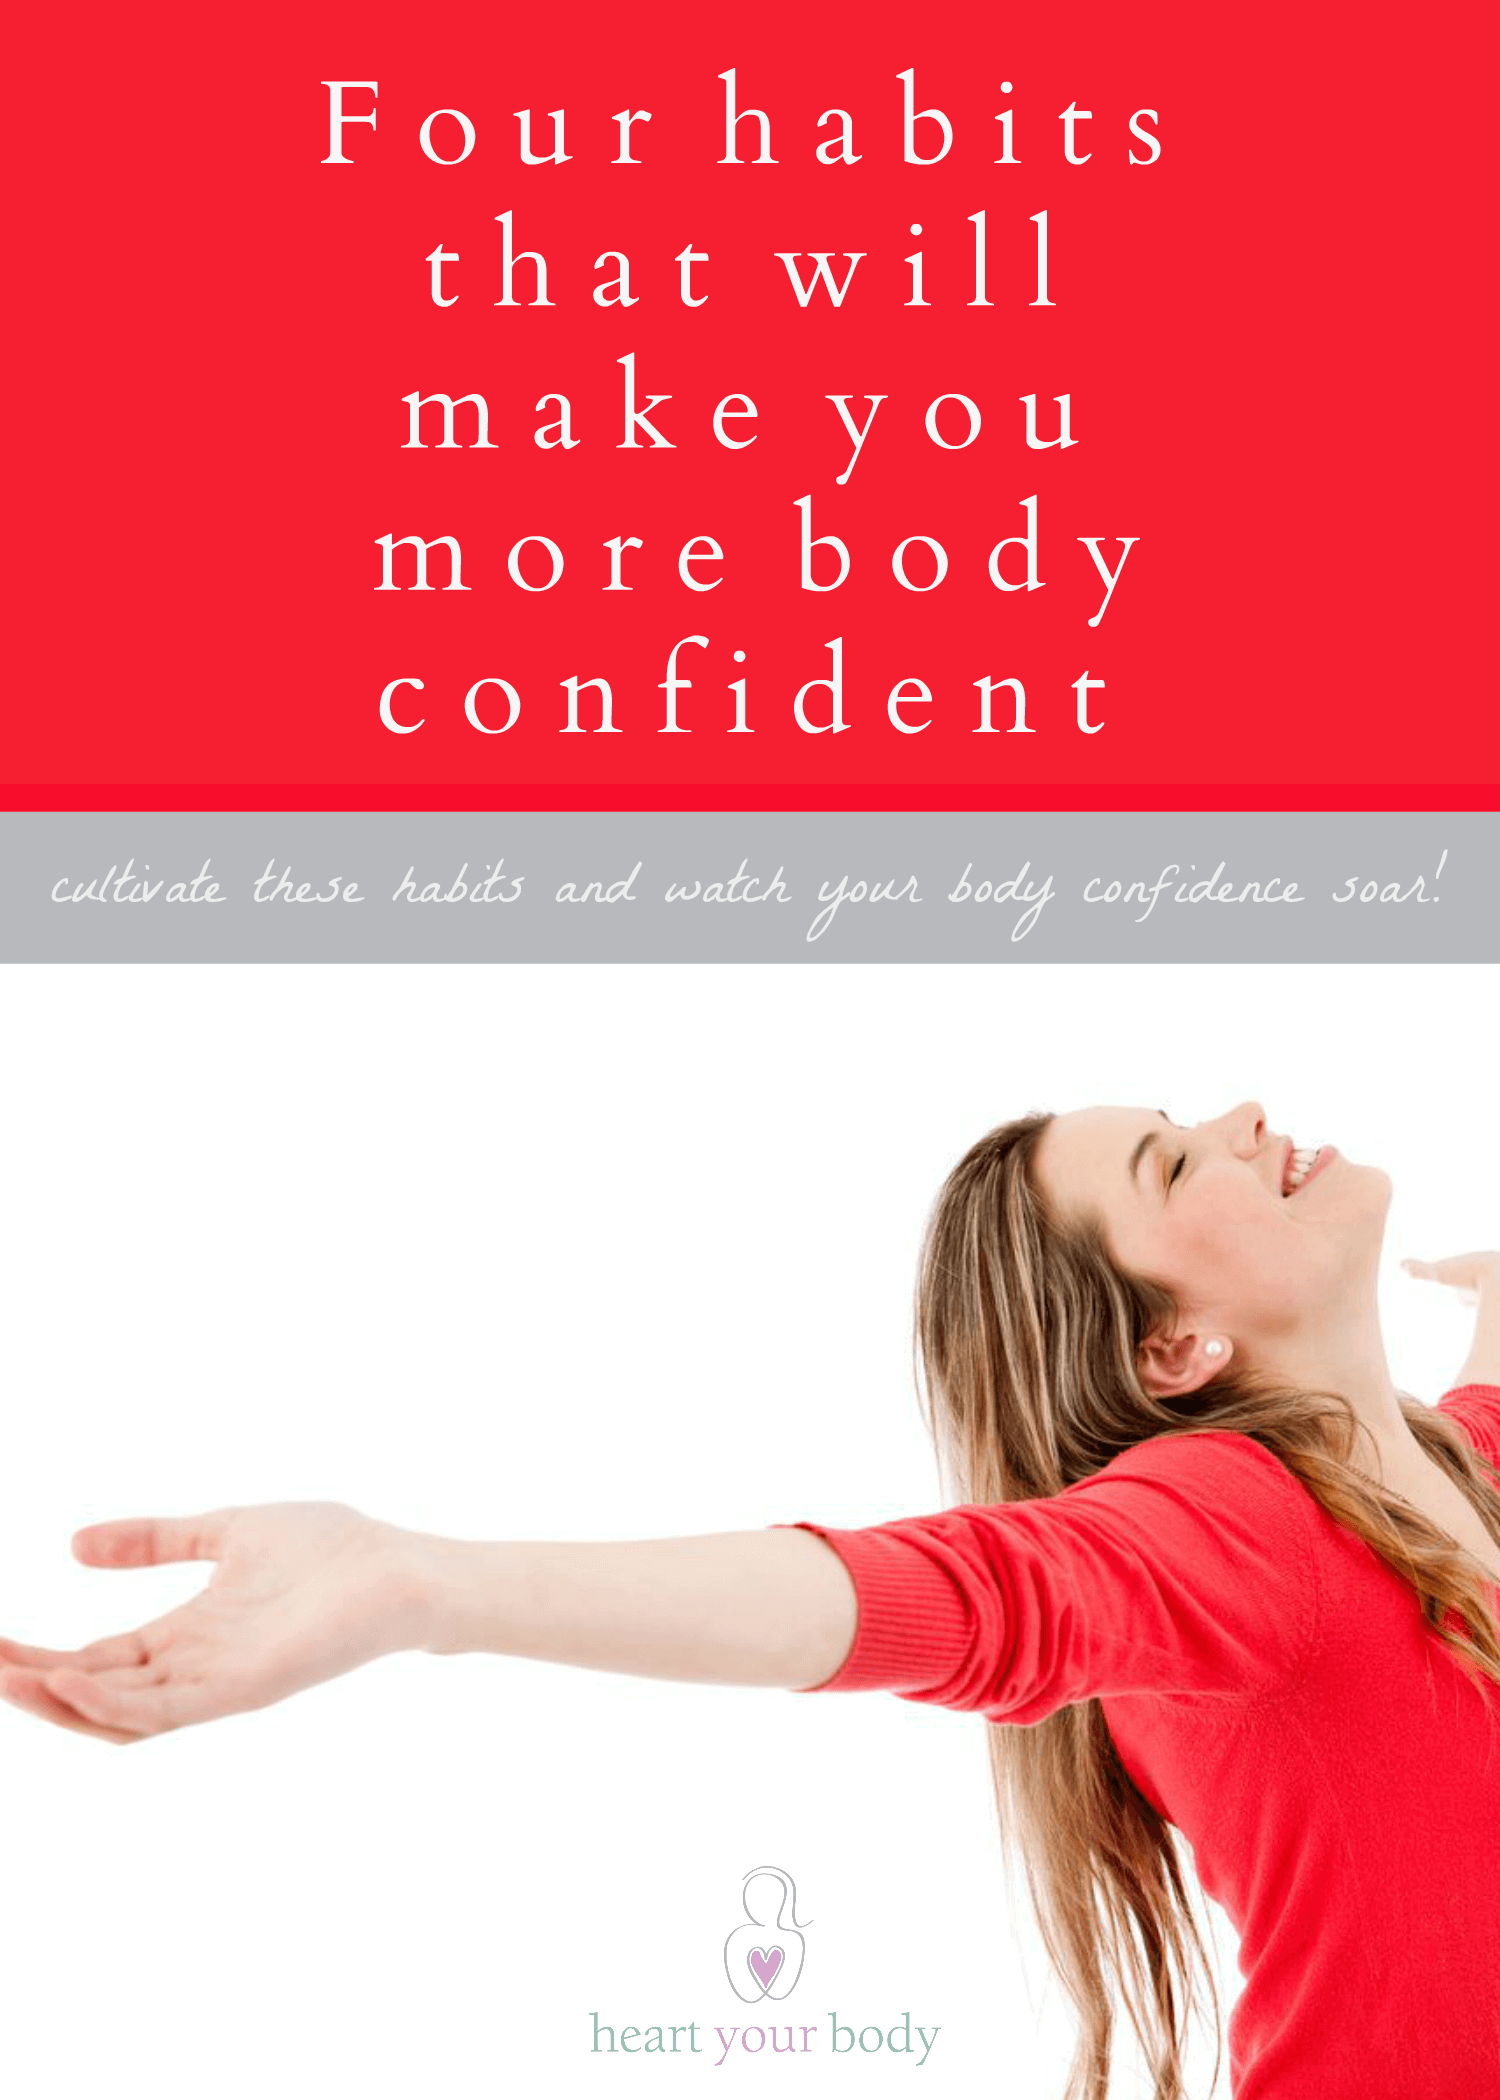 4 habits to make you more body confident